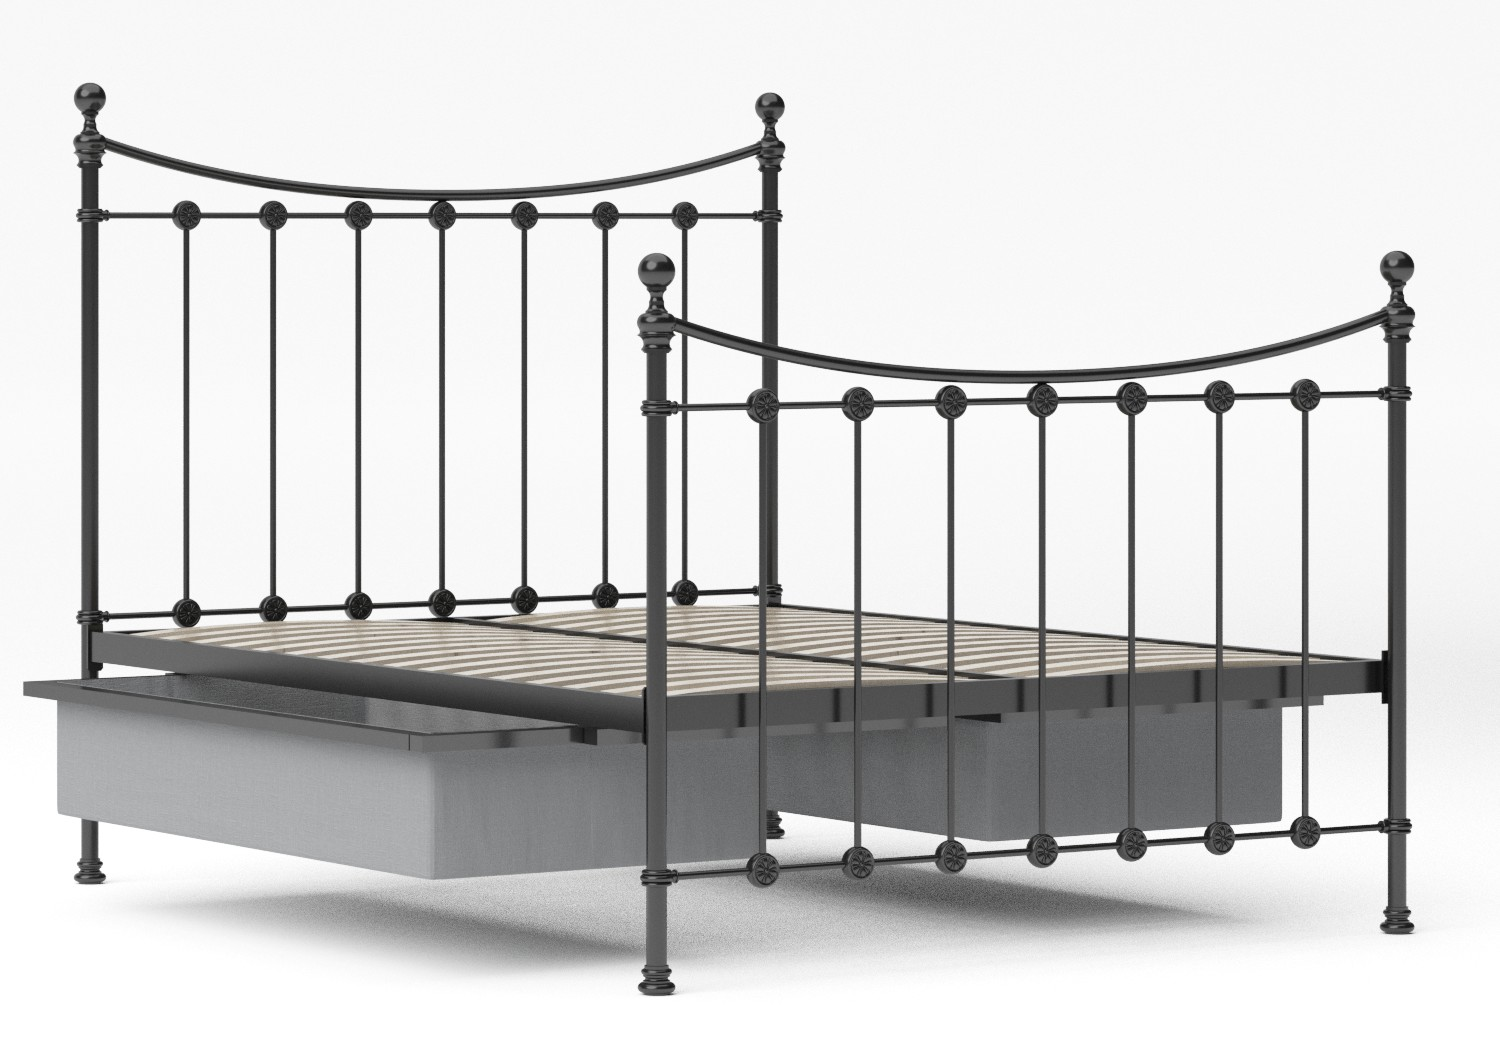 Carrick Iron/Metal Bed in Satin Black with black painted details shown with underbed storage